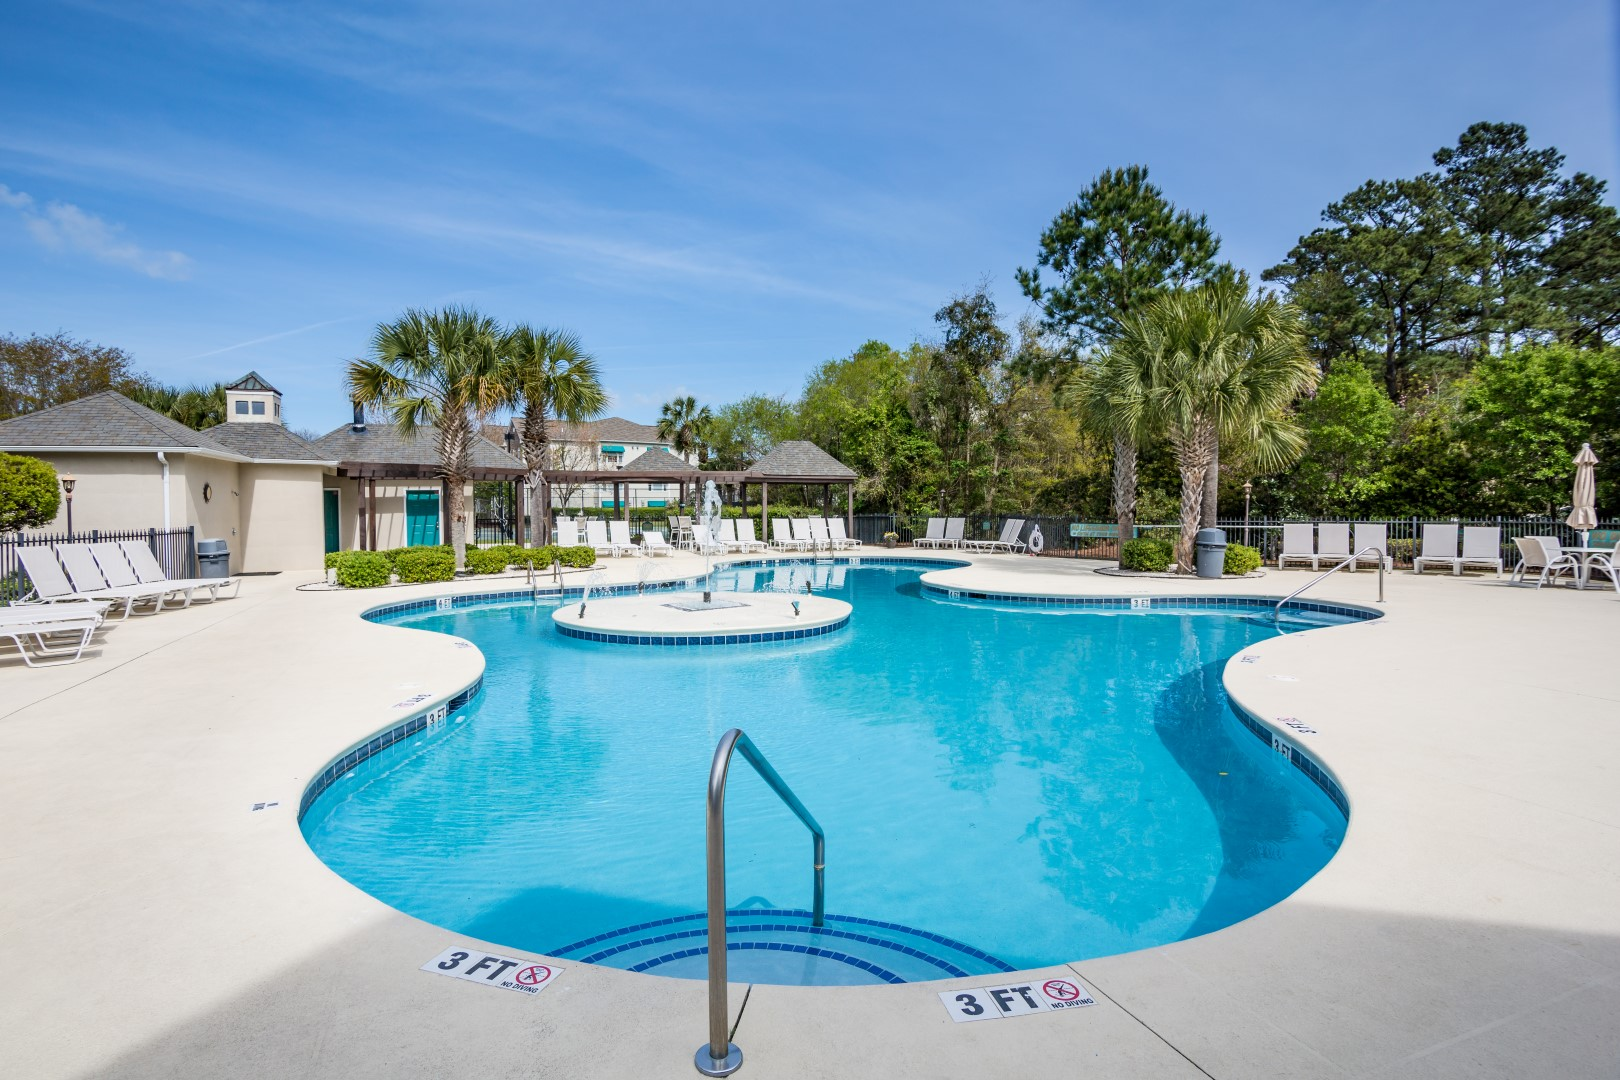 Off Season Monthly Rentals In Myrtle Beach Sc